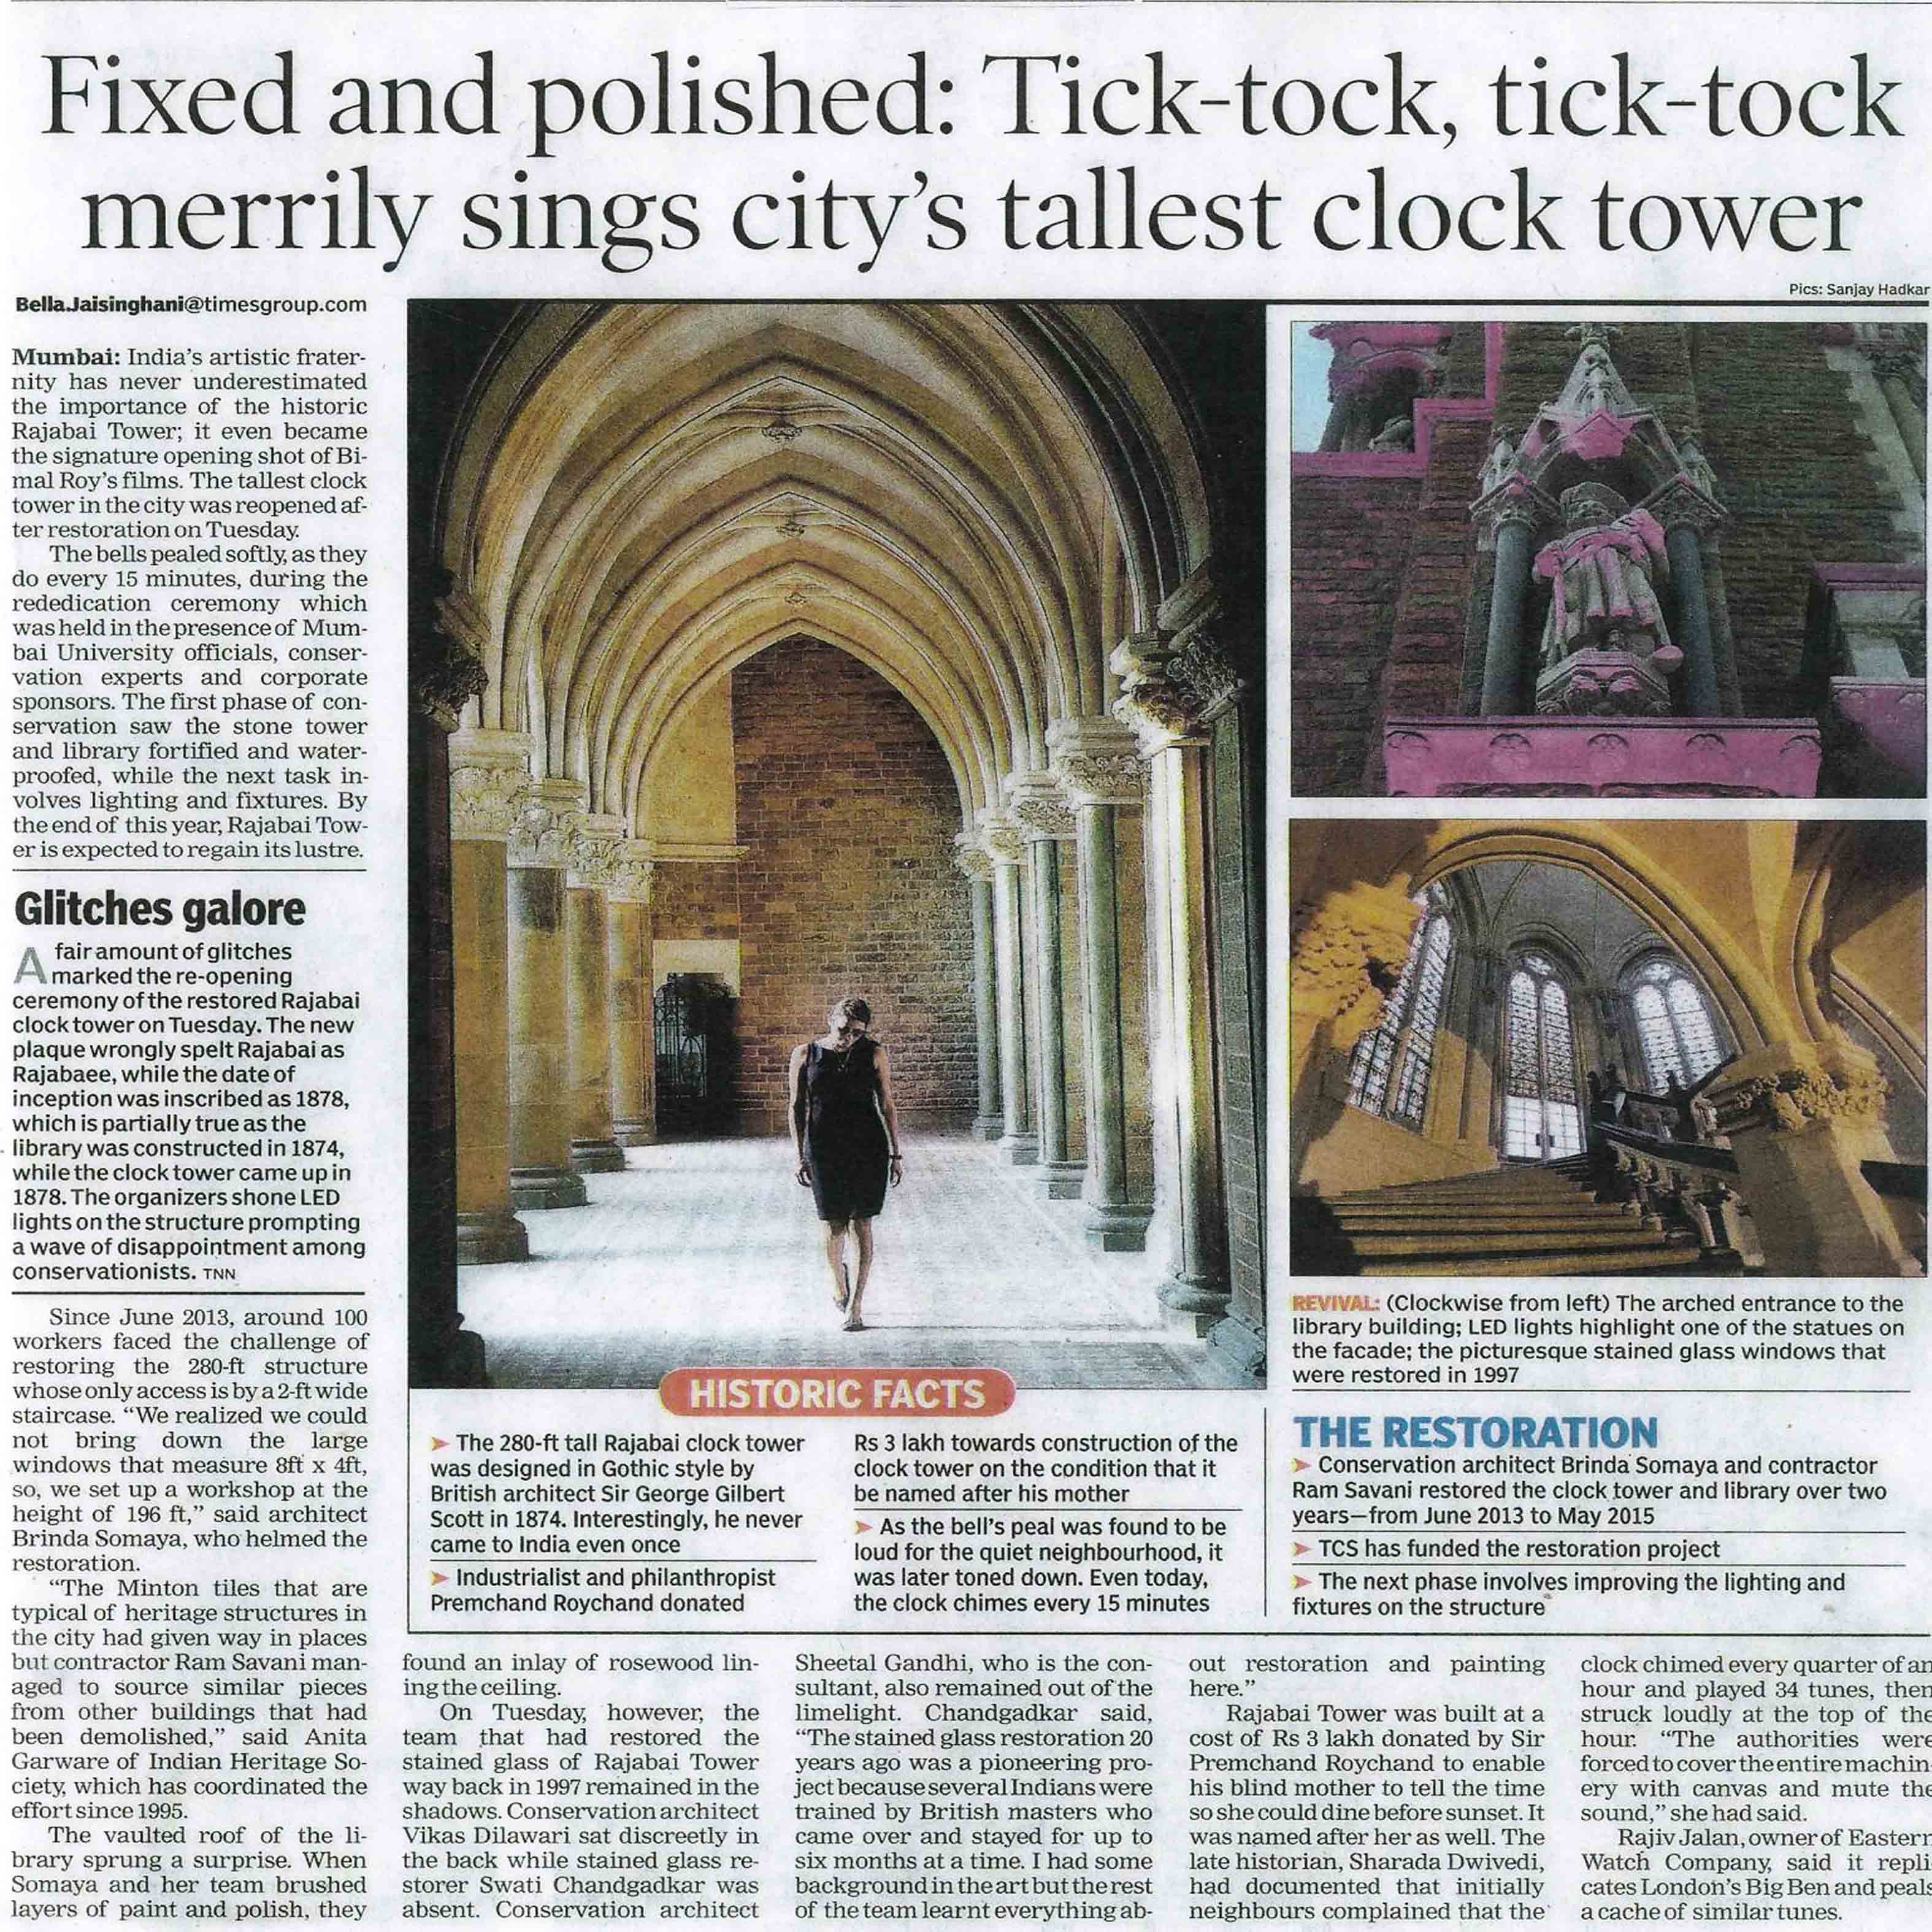 The Times of India - Tixed and Polished: tick-tock, tick-tock merrily sings city's tallest cloc tower